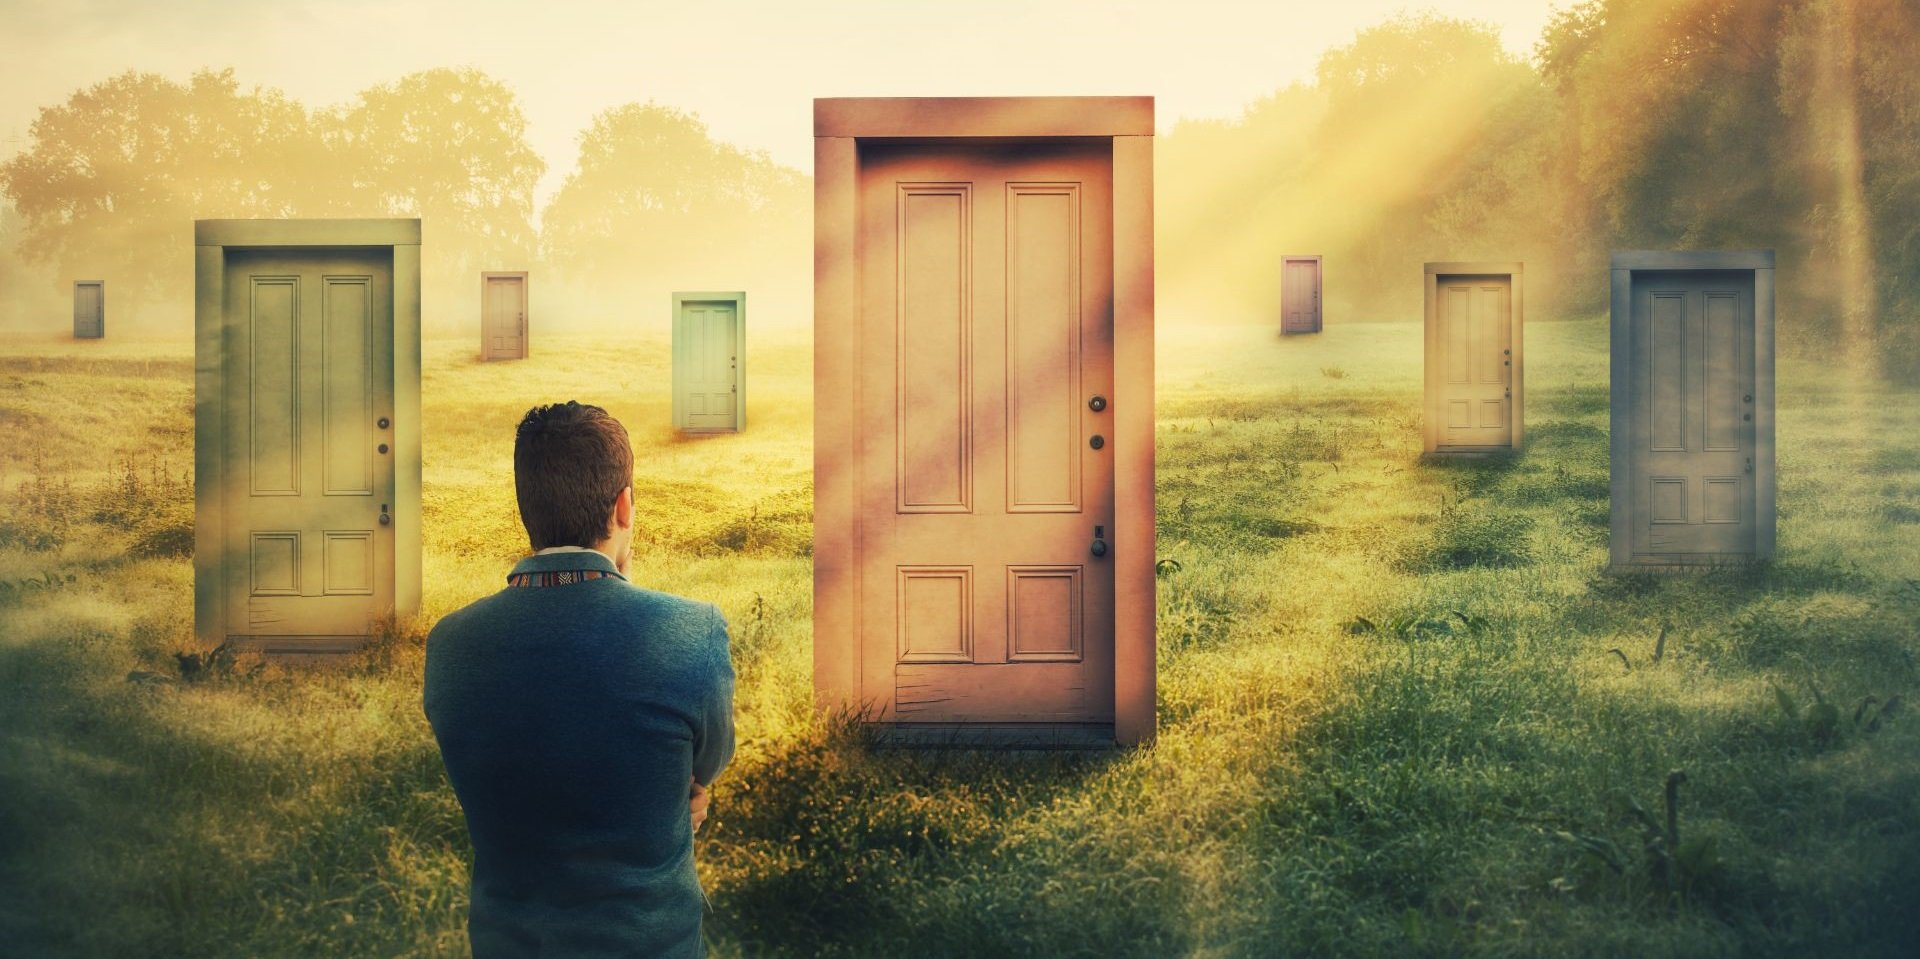 An illustration where we see a person wondering which door to open